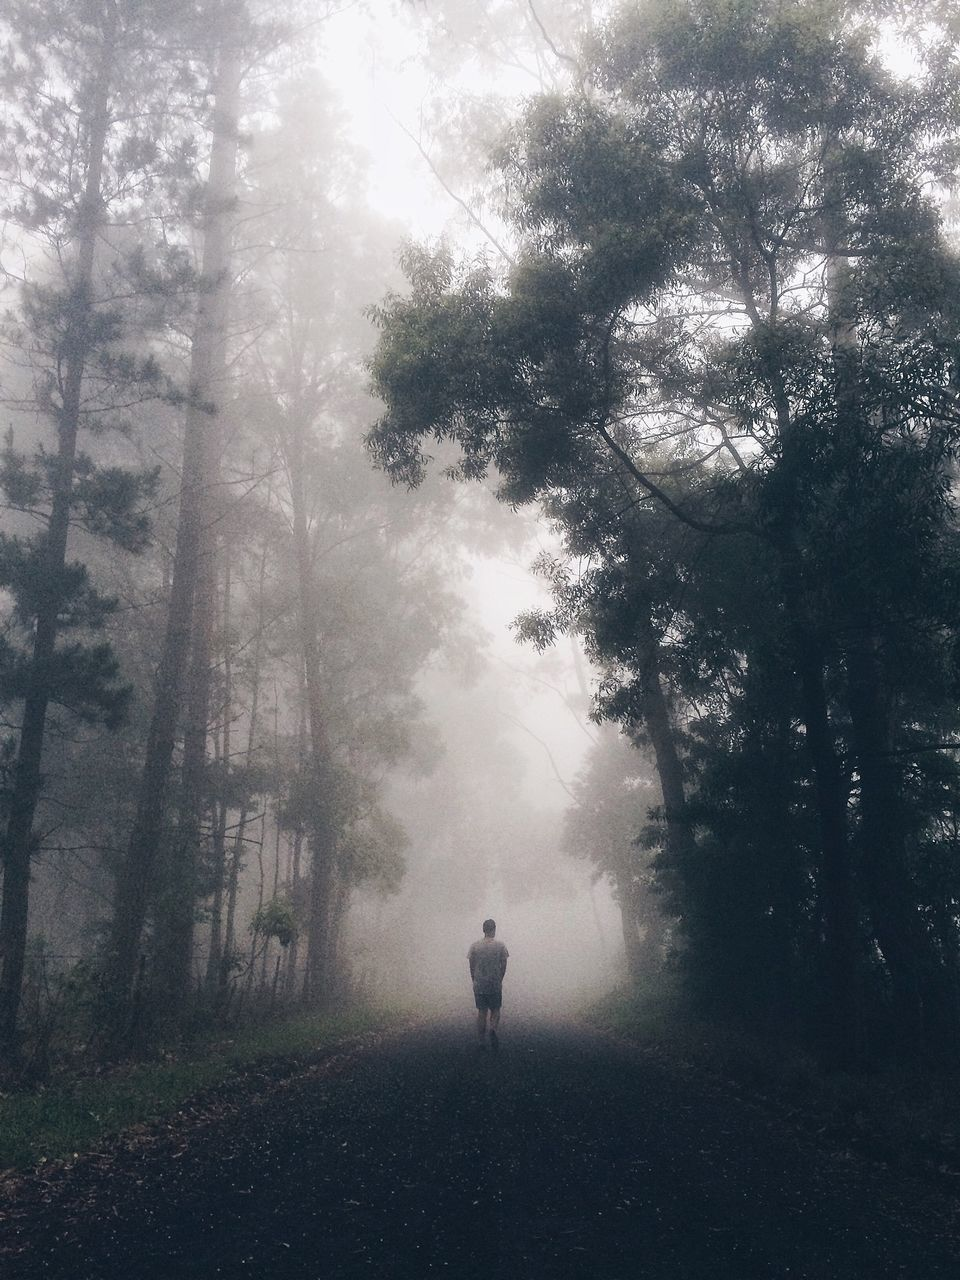 Rear View Of Man Walking On Country Road Amidst Trees In Foggy Weather